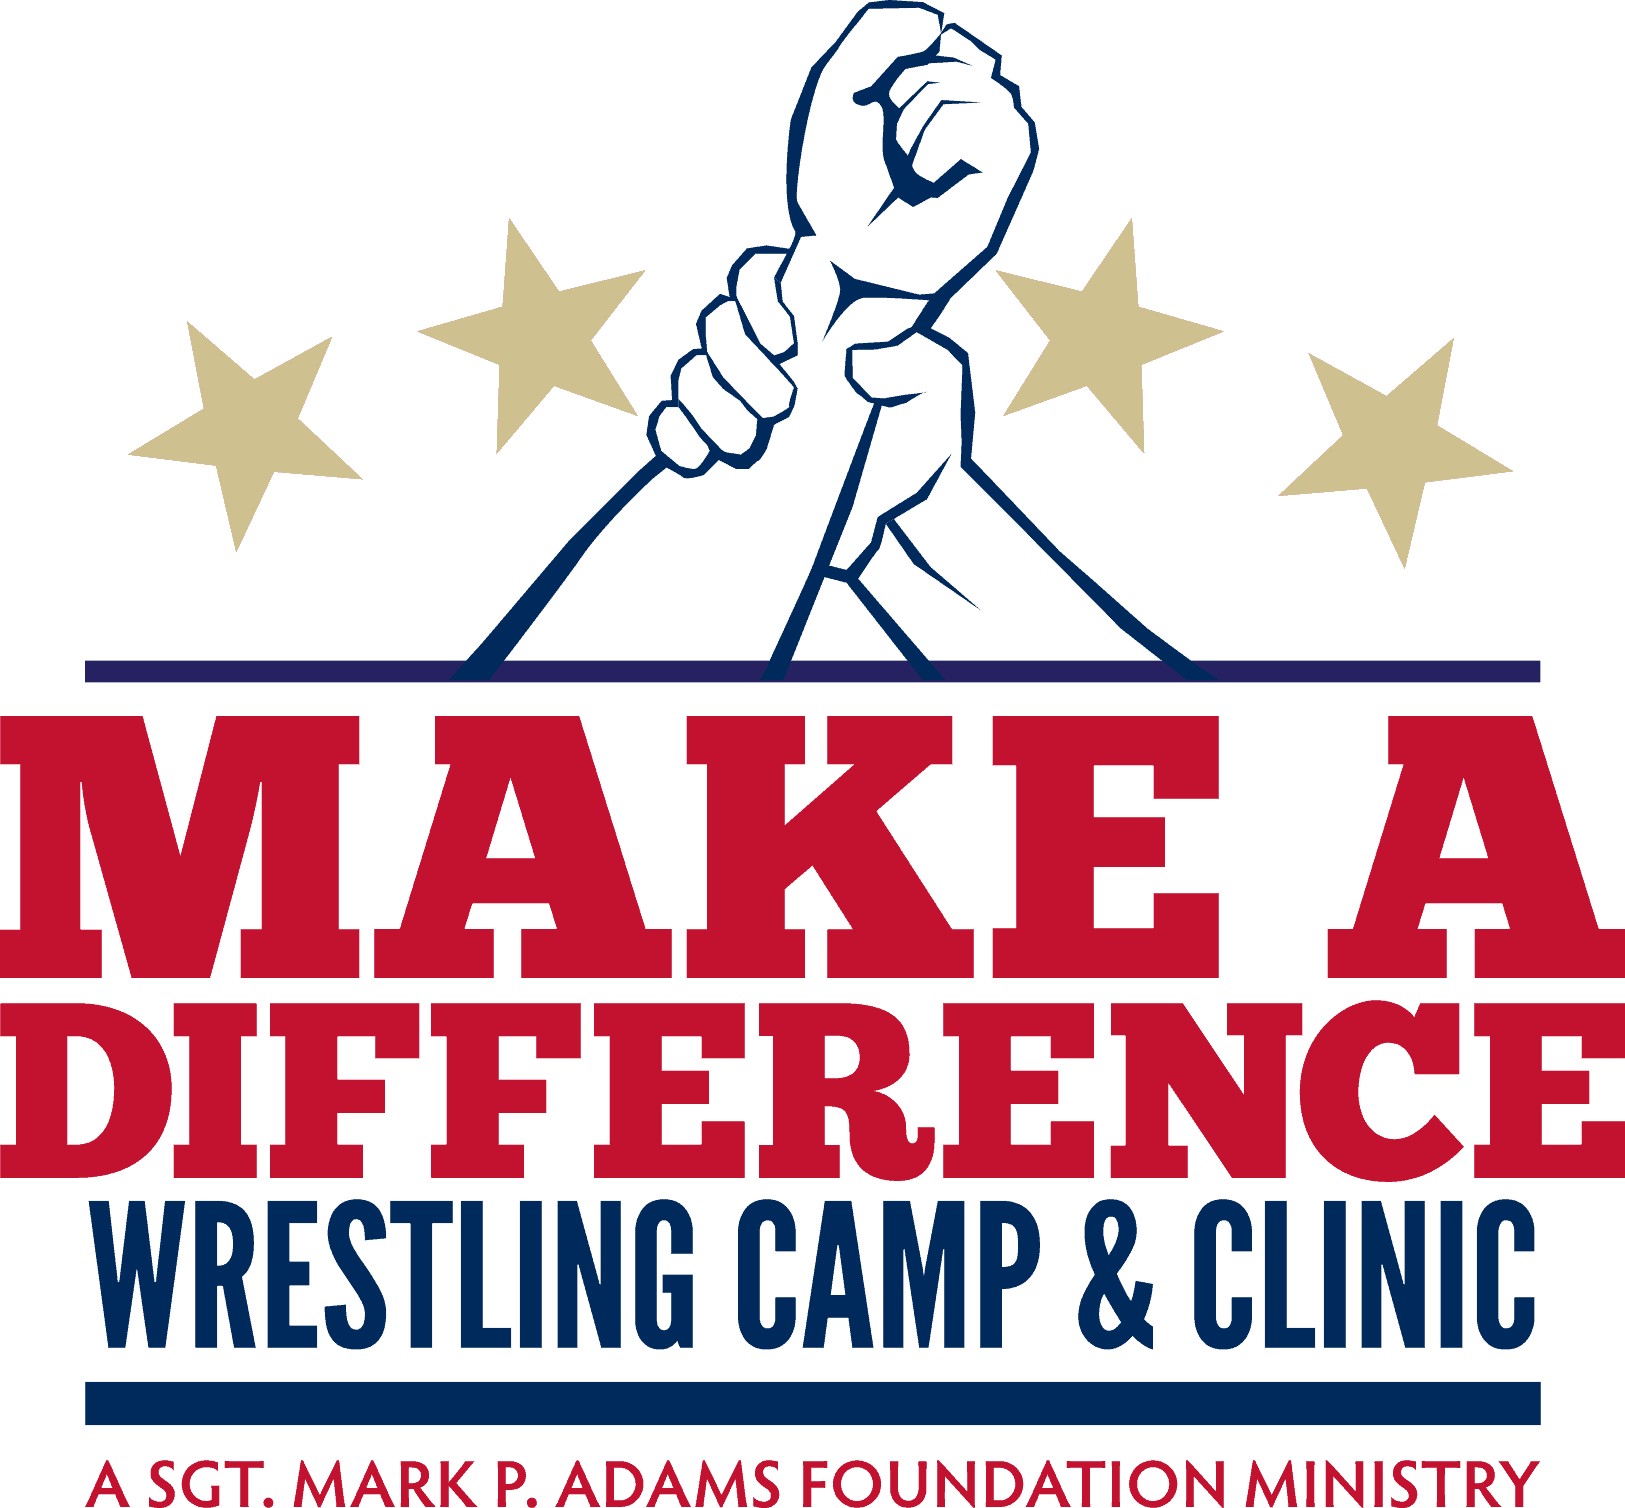 Make A Difference Wrestling Camp & Clinic Logo